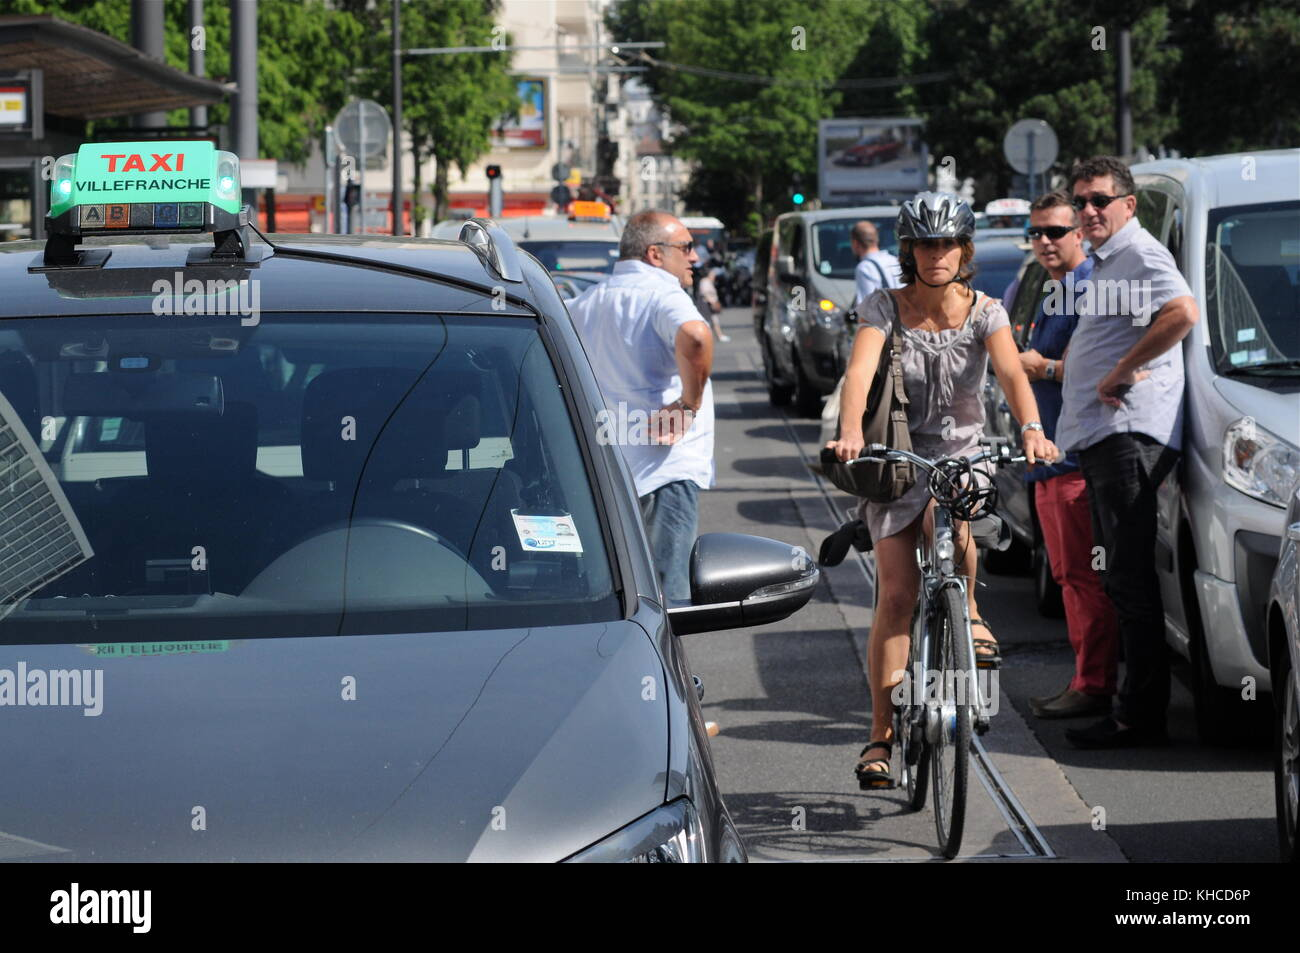 Taxi drivers protest against Uberpop drivers service, Lyon, France Stock Photo